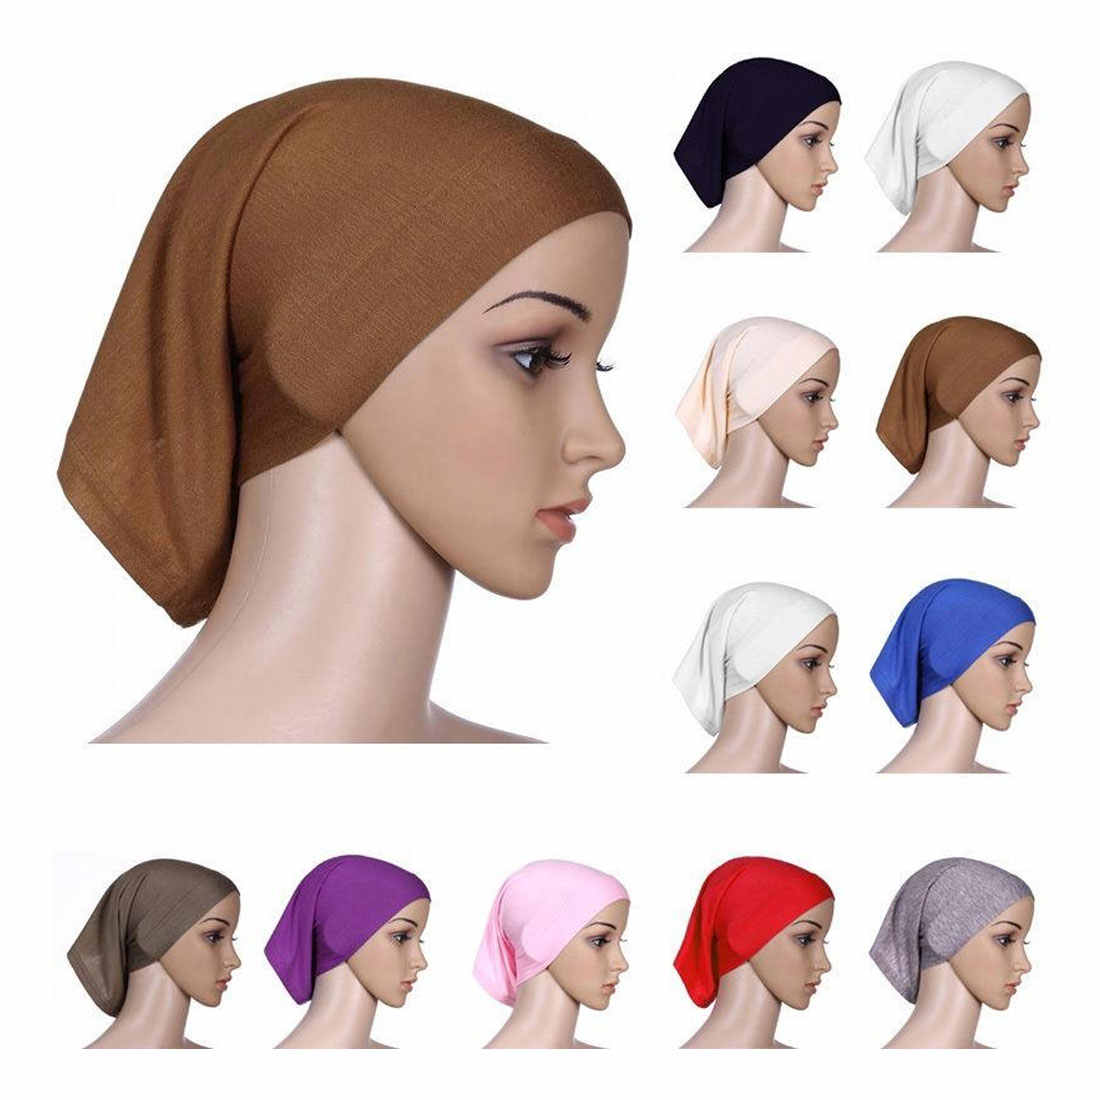 New 2019 Muslim Headscarf Women Hijab Caps Hat Cap Cotton Under Scarf Bone Bonnet Neck Cover Muslim Scarf Wholesale